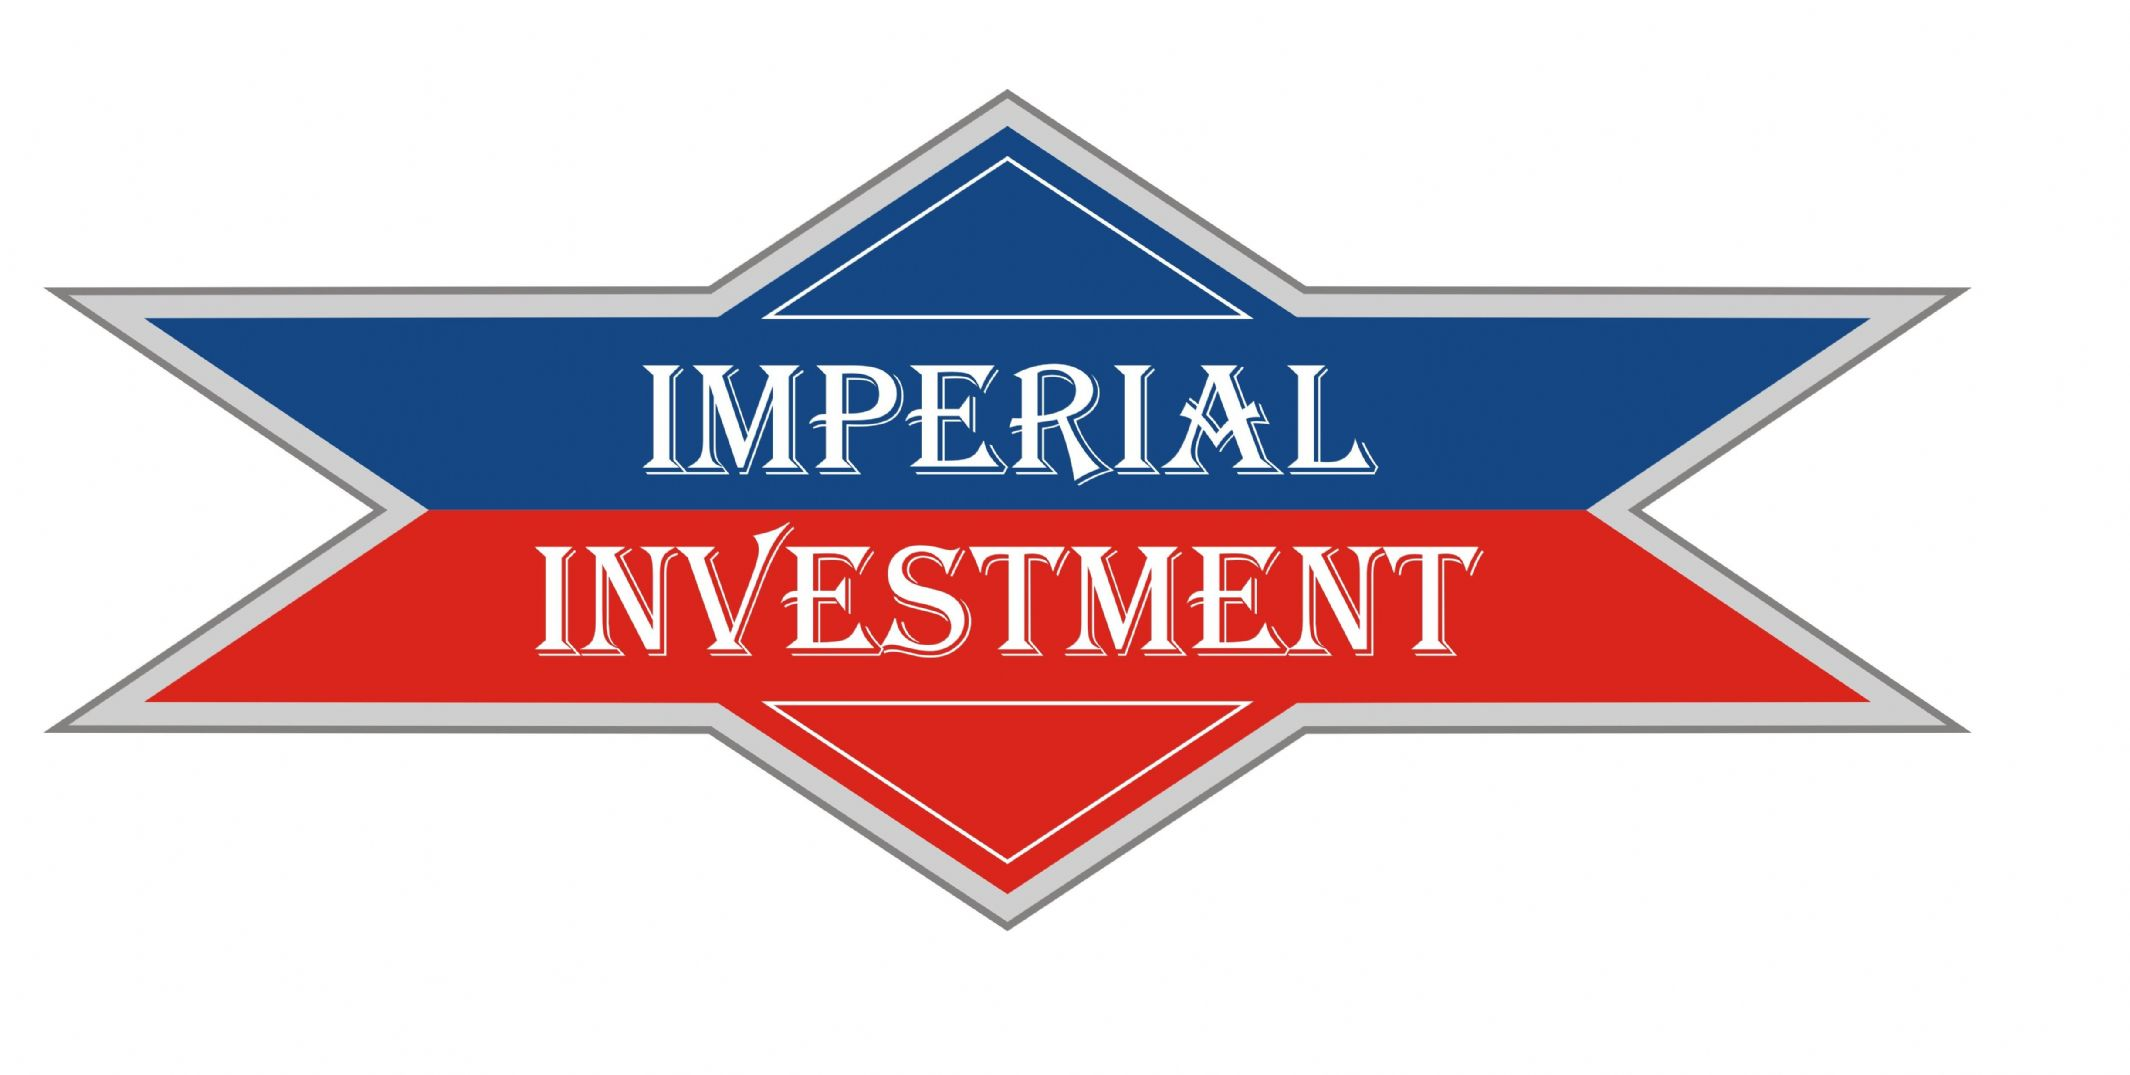 IMPERIAL INVESTMENT - BAROQUE WORLD